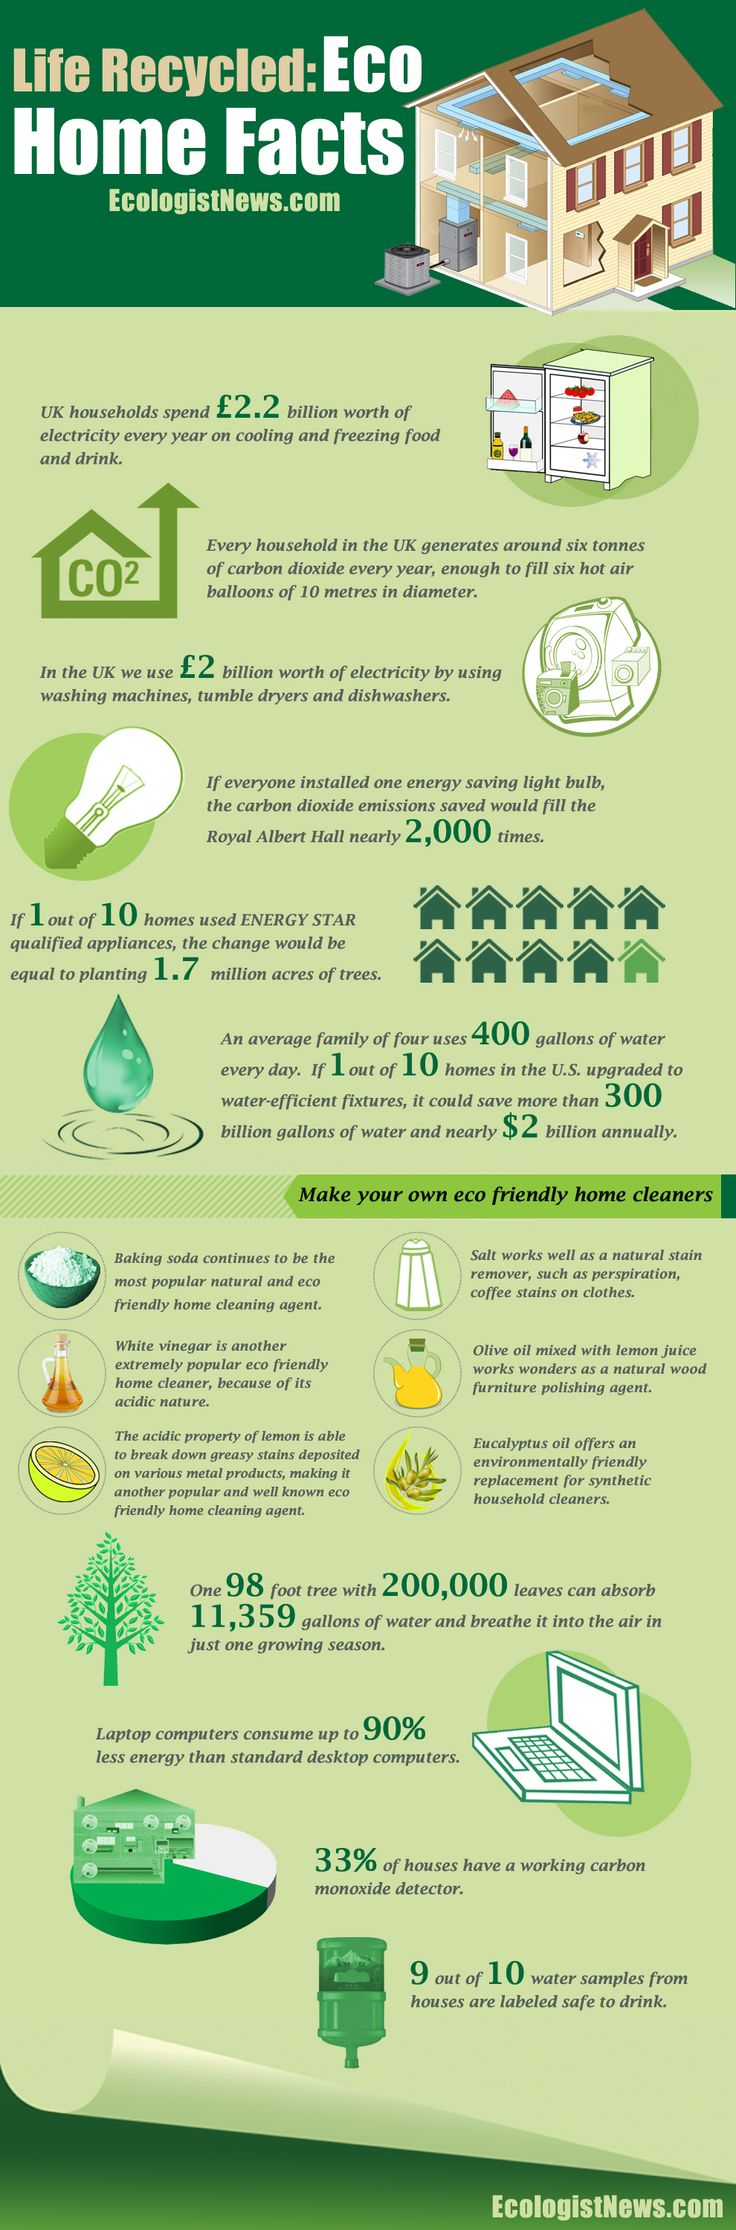 Quick Eco Home Facts - Did you want to make your home more eco friendly? Learn the facts about energy use in the average home. Then get tips to make your home more environmentally friendly, starting with a quick list of natural household cleaners.